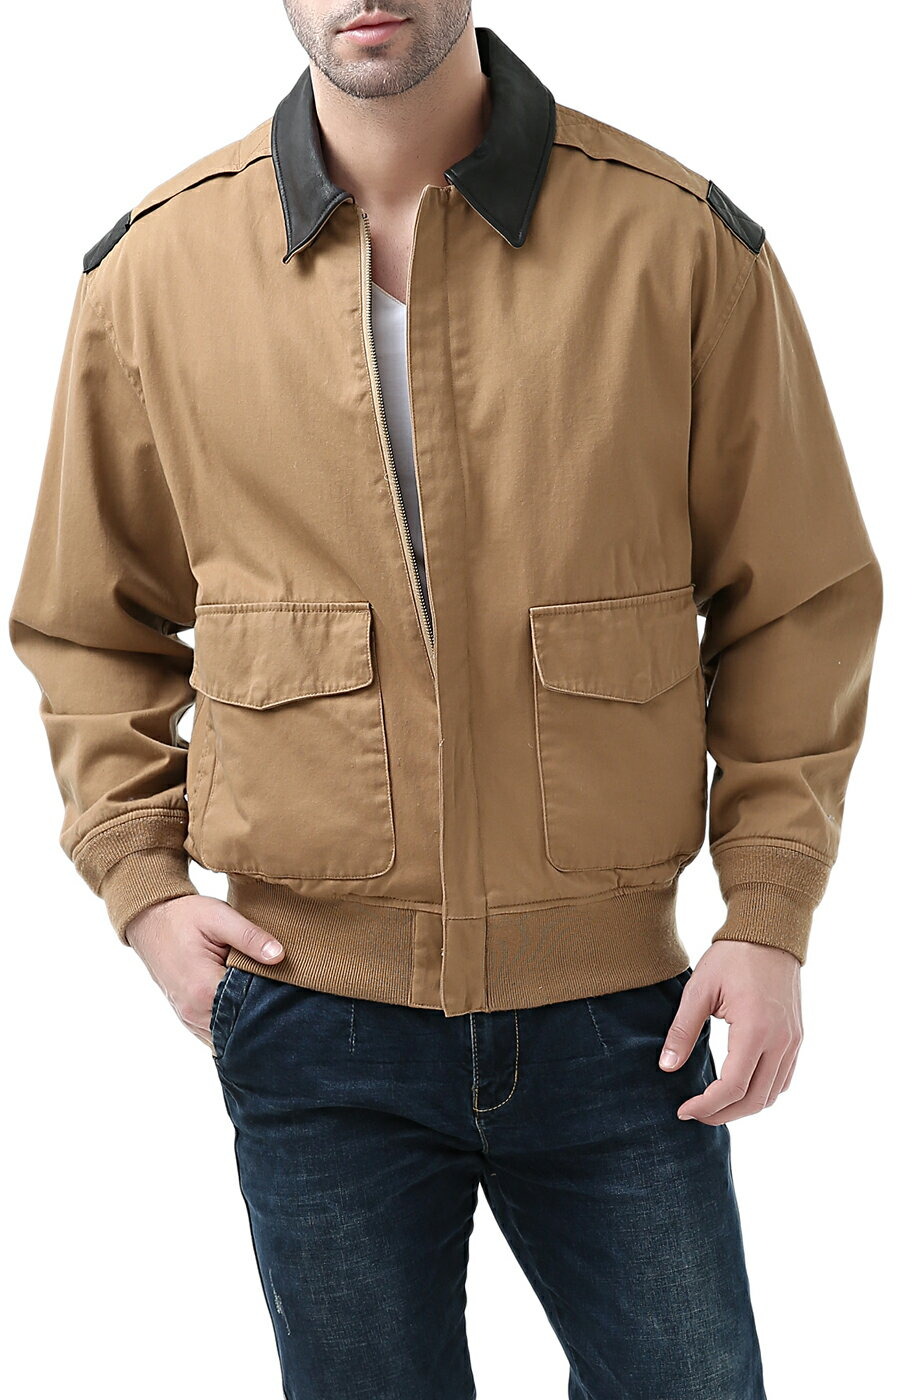 5a9775050 Landing Leathers Men's Air Force A-2 Leather Trim Bomber Jacket